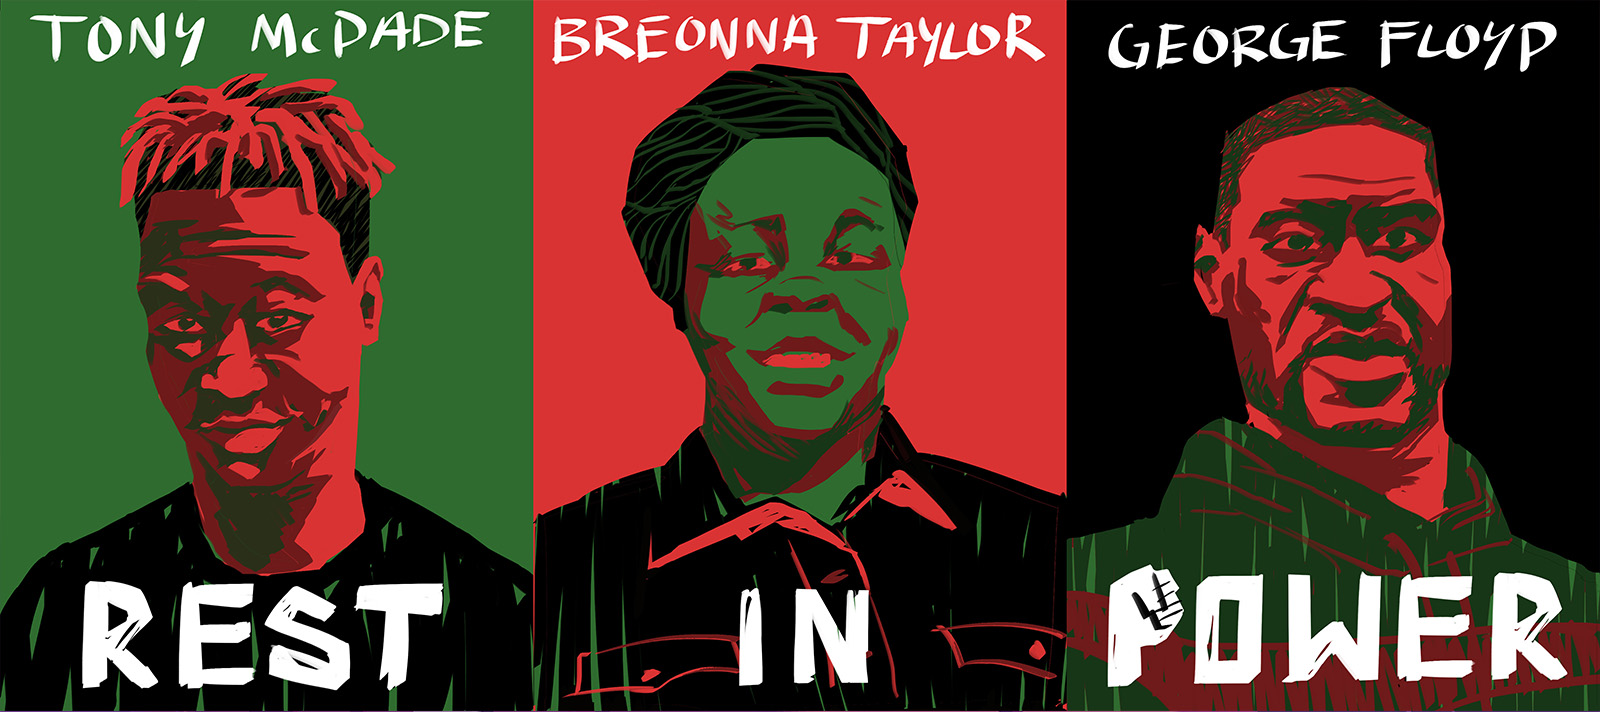 The Rest in Power triptych. Tony McDade, Breonna Taylor, and George Floyd are portrayed side by side. The portraits are rendered using the red, green, and black of the Pan-African flag. White text over the image reads their names and the phrase REST IN POWER.